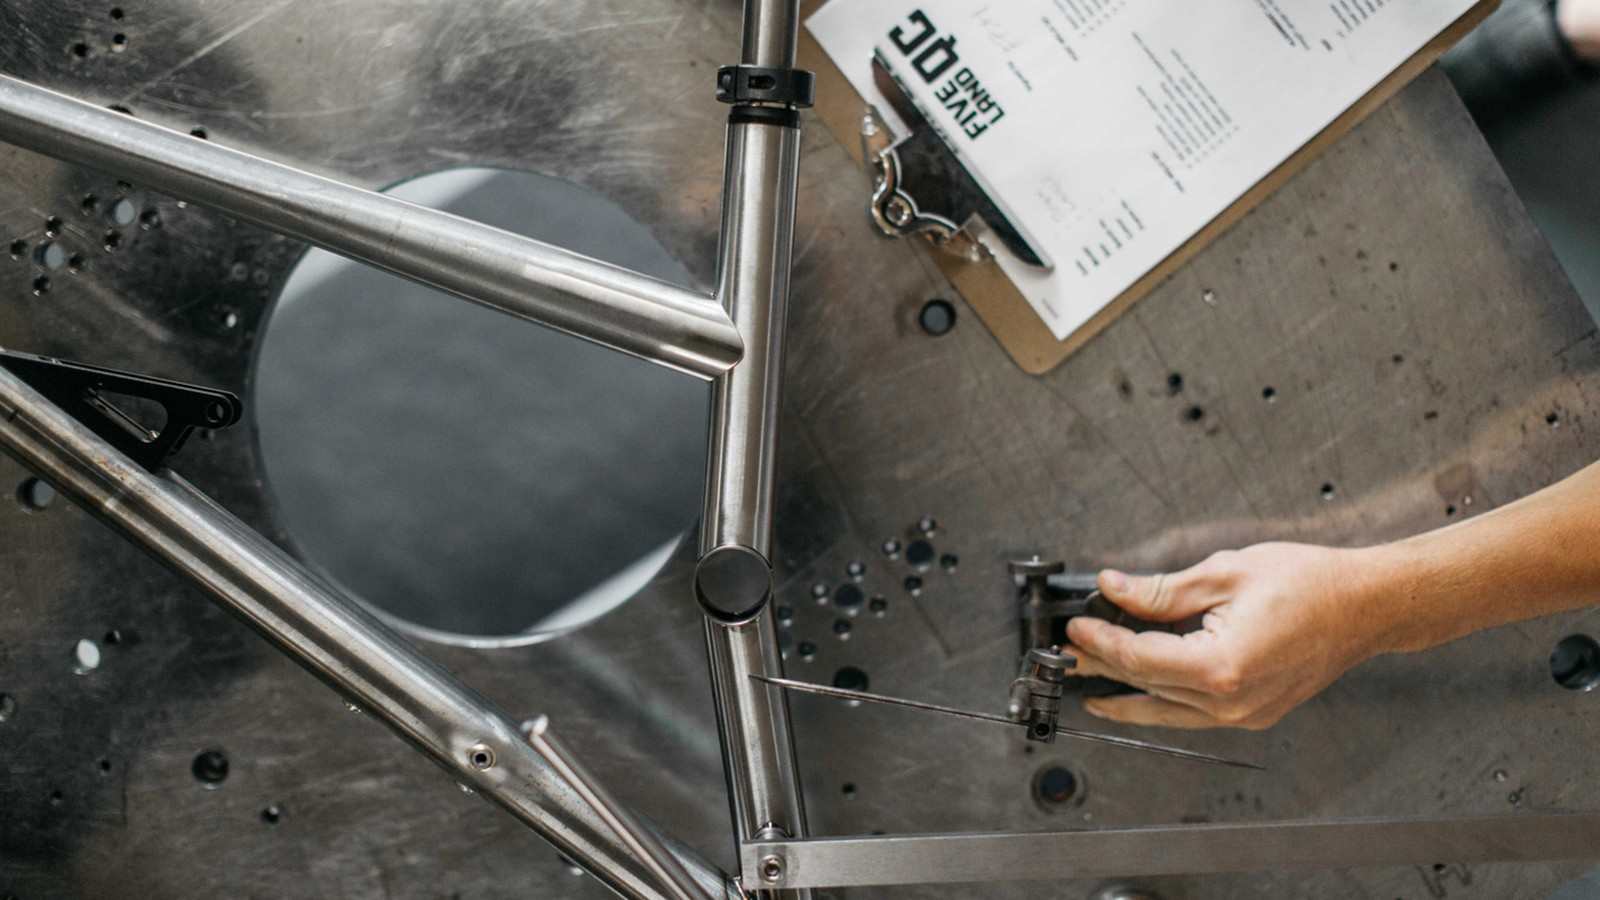 The steel front triangle is made by Five Land Bikes in the UK